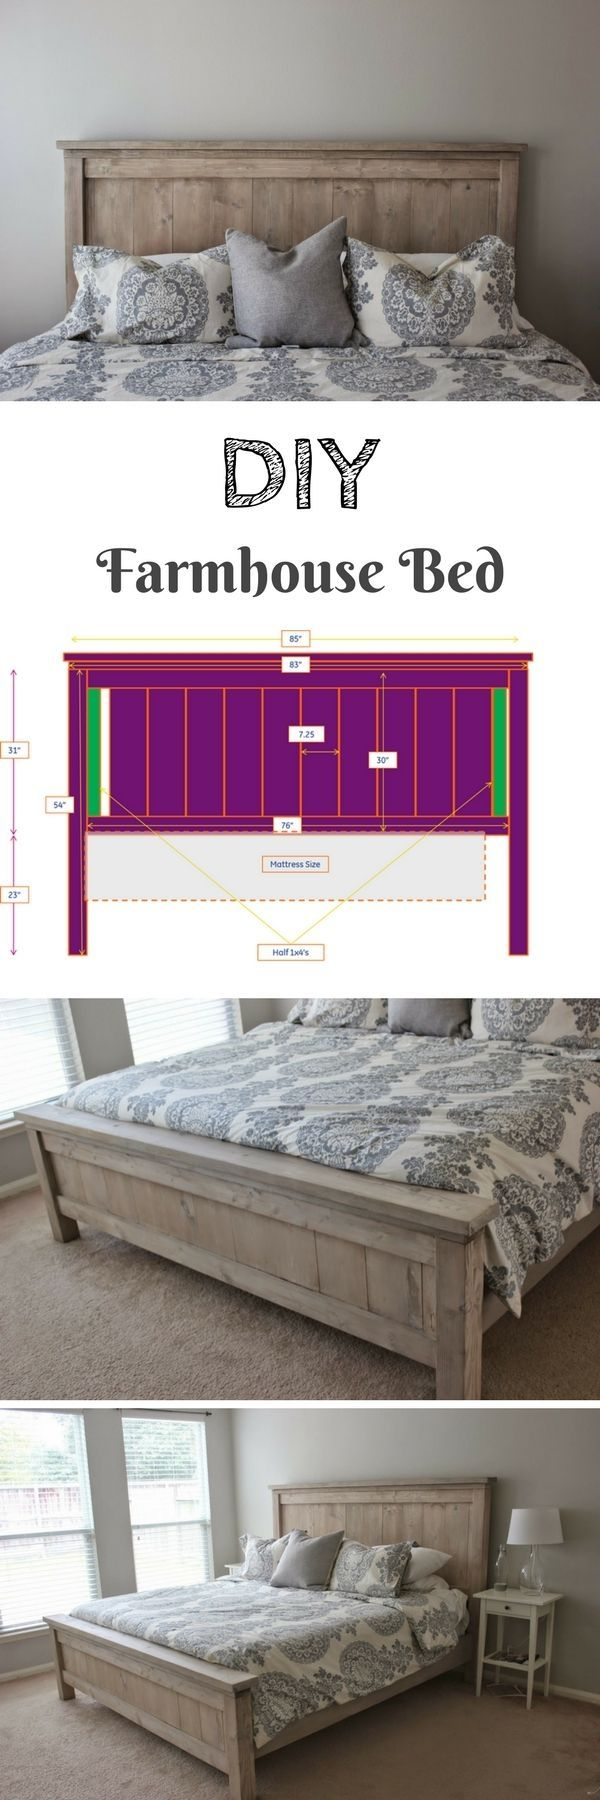 Check out how to build a DIY farmhouse bed @istandarddesign by rowena